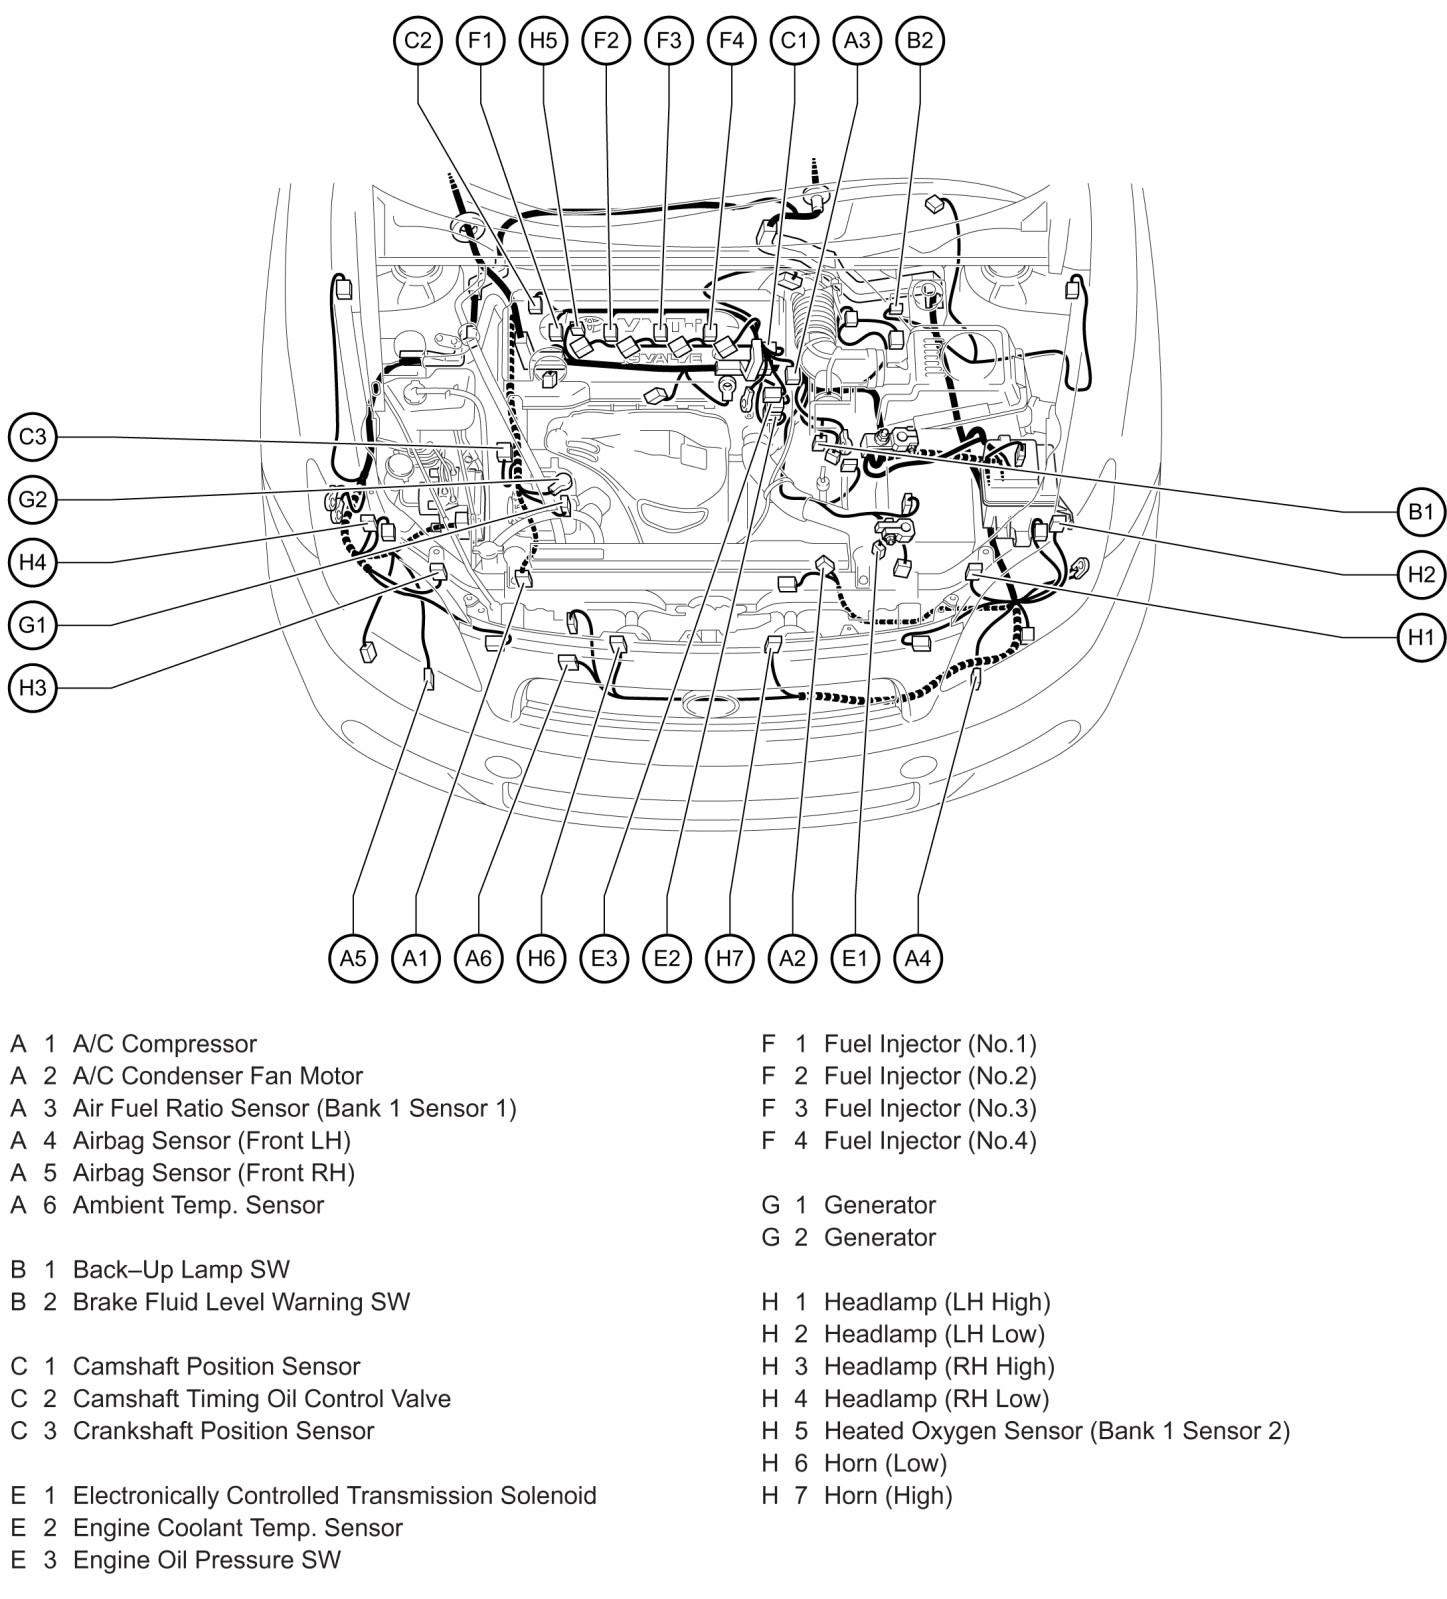 2005 Scion Xa Radio Wiring Diagram Scion Auto Wiring Diagram